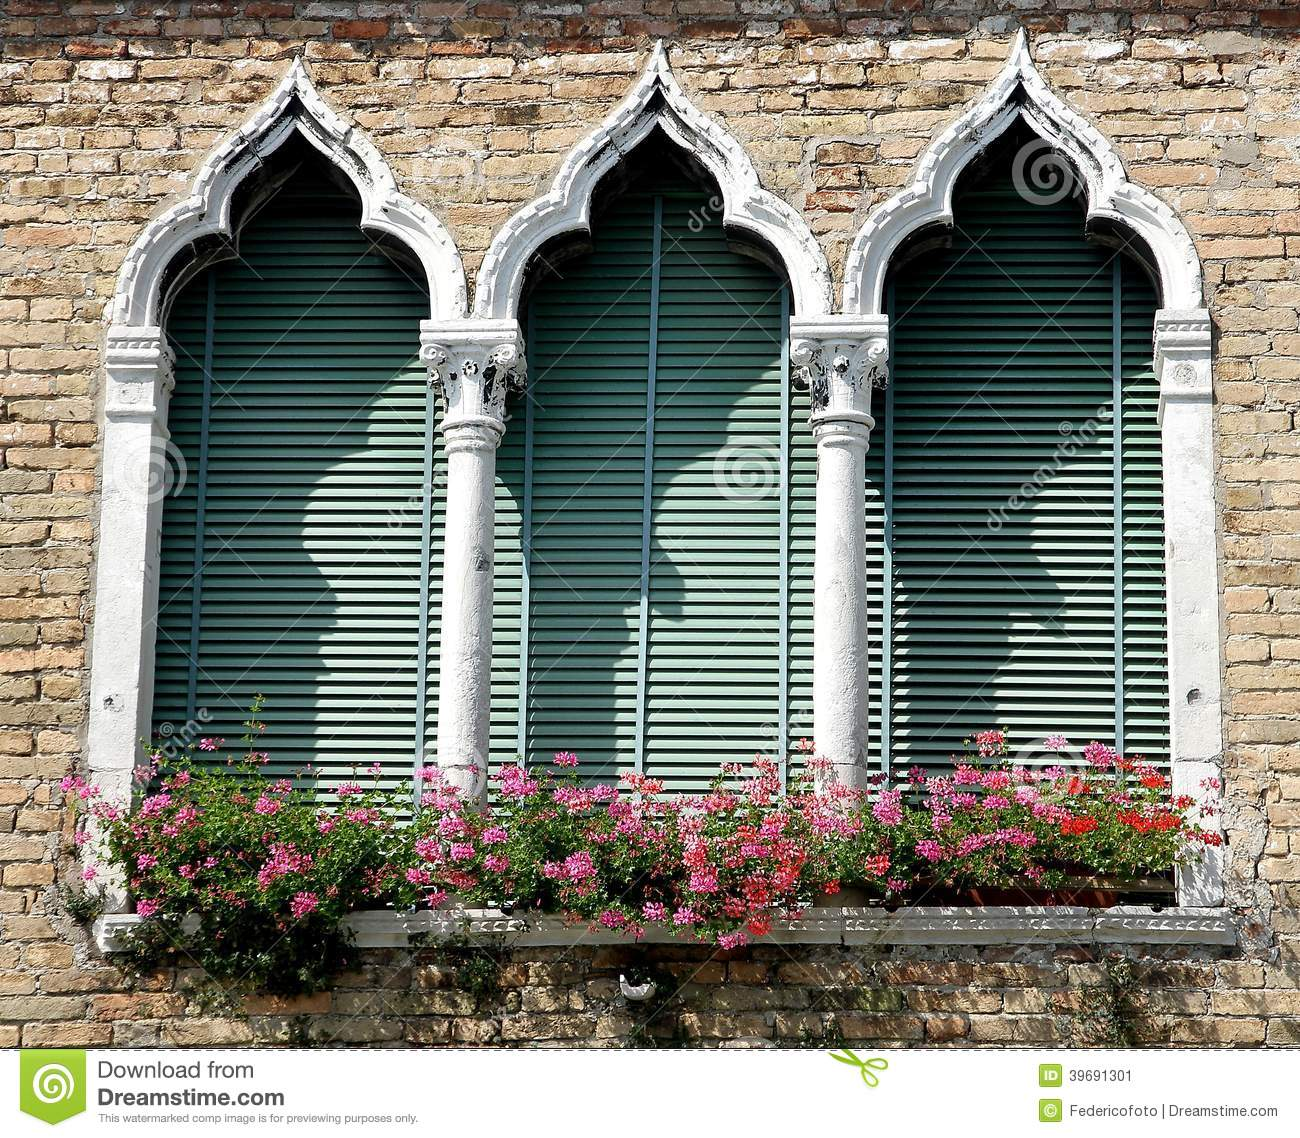 Luxurious Balcony In Venetian Style With Arched Windows